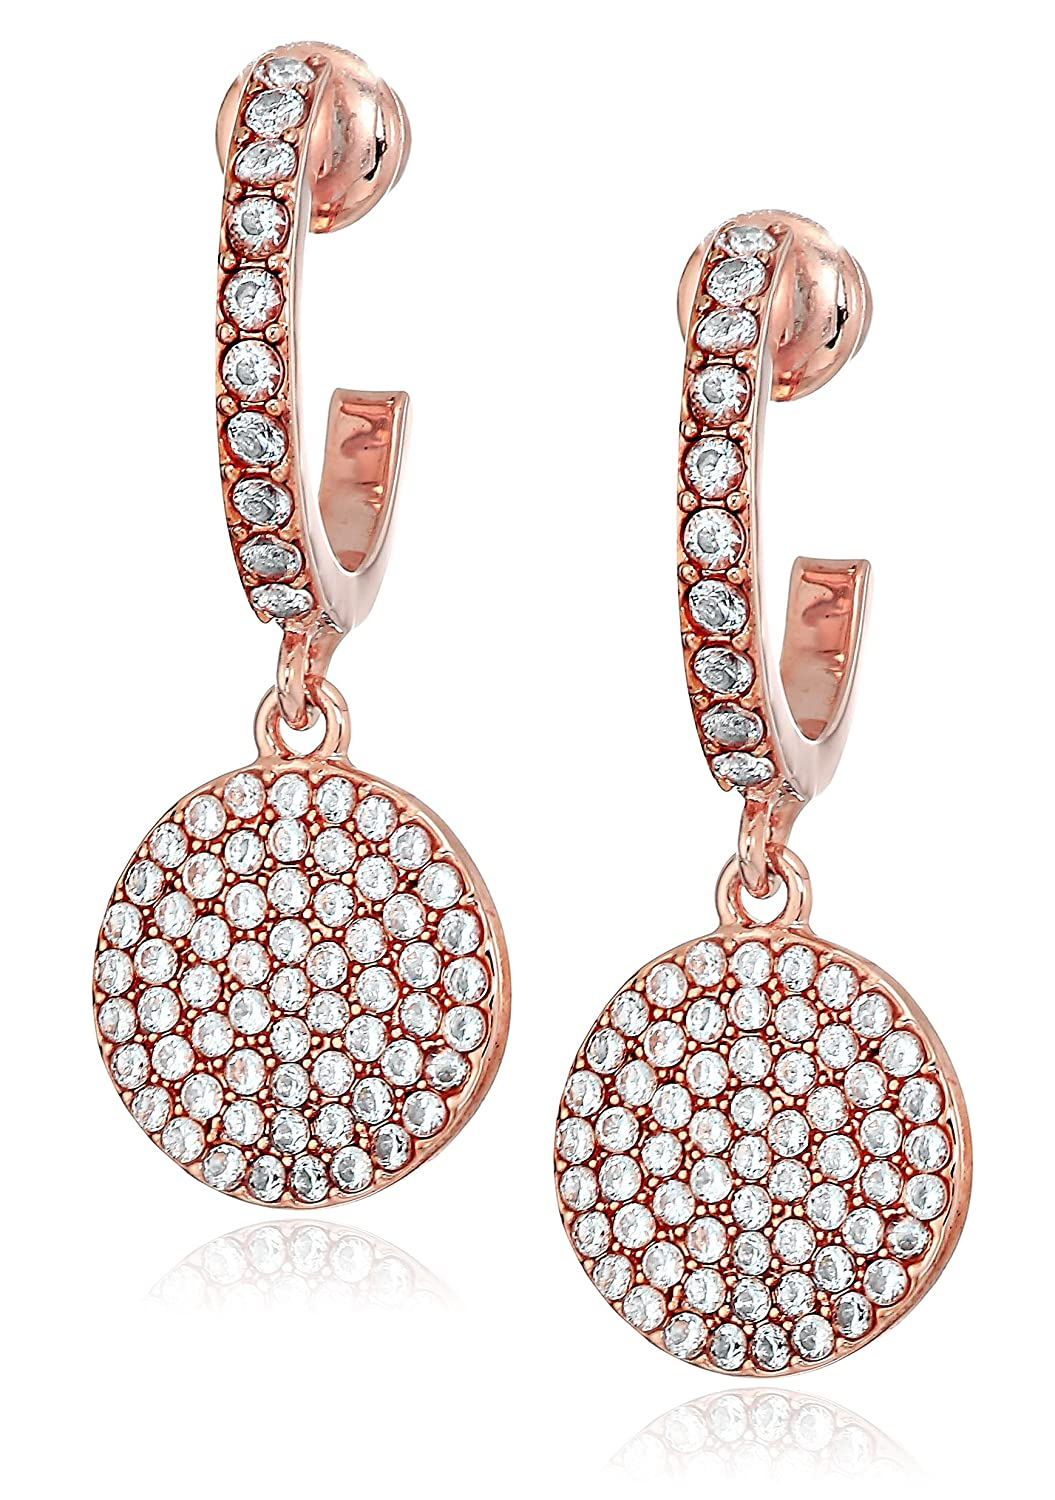 kate spade new york Pave Drop Earrings Shine On Drop Earrings Drop Earrings kate spade jewelry WBRUE065668